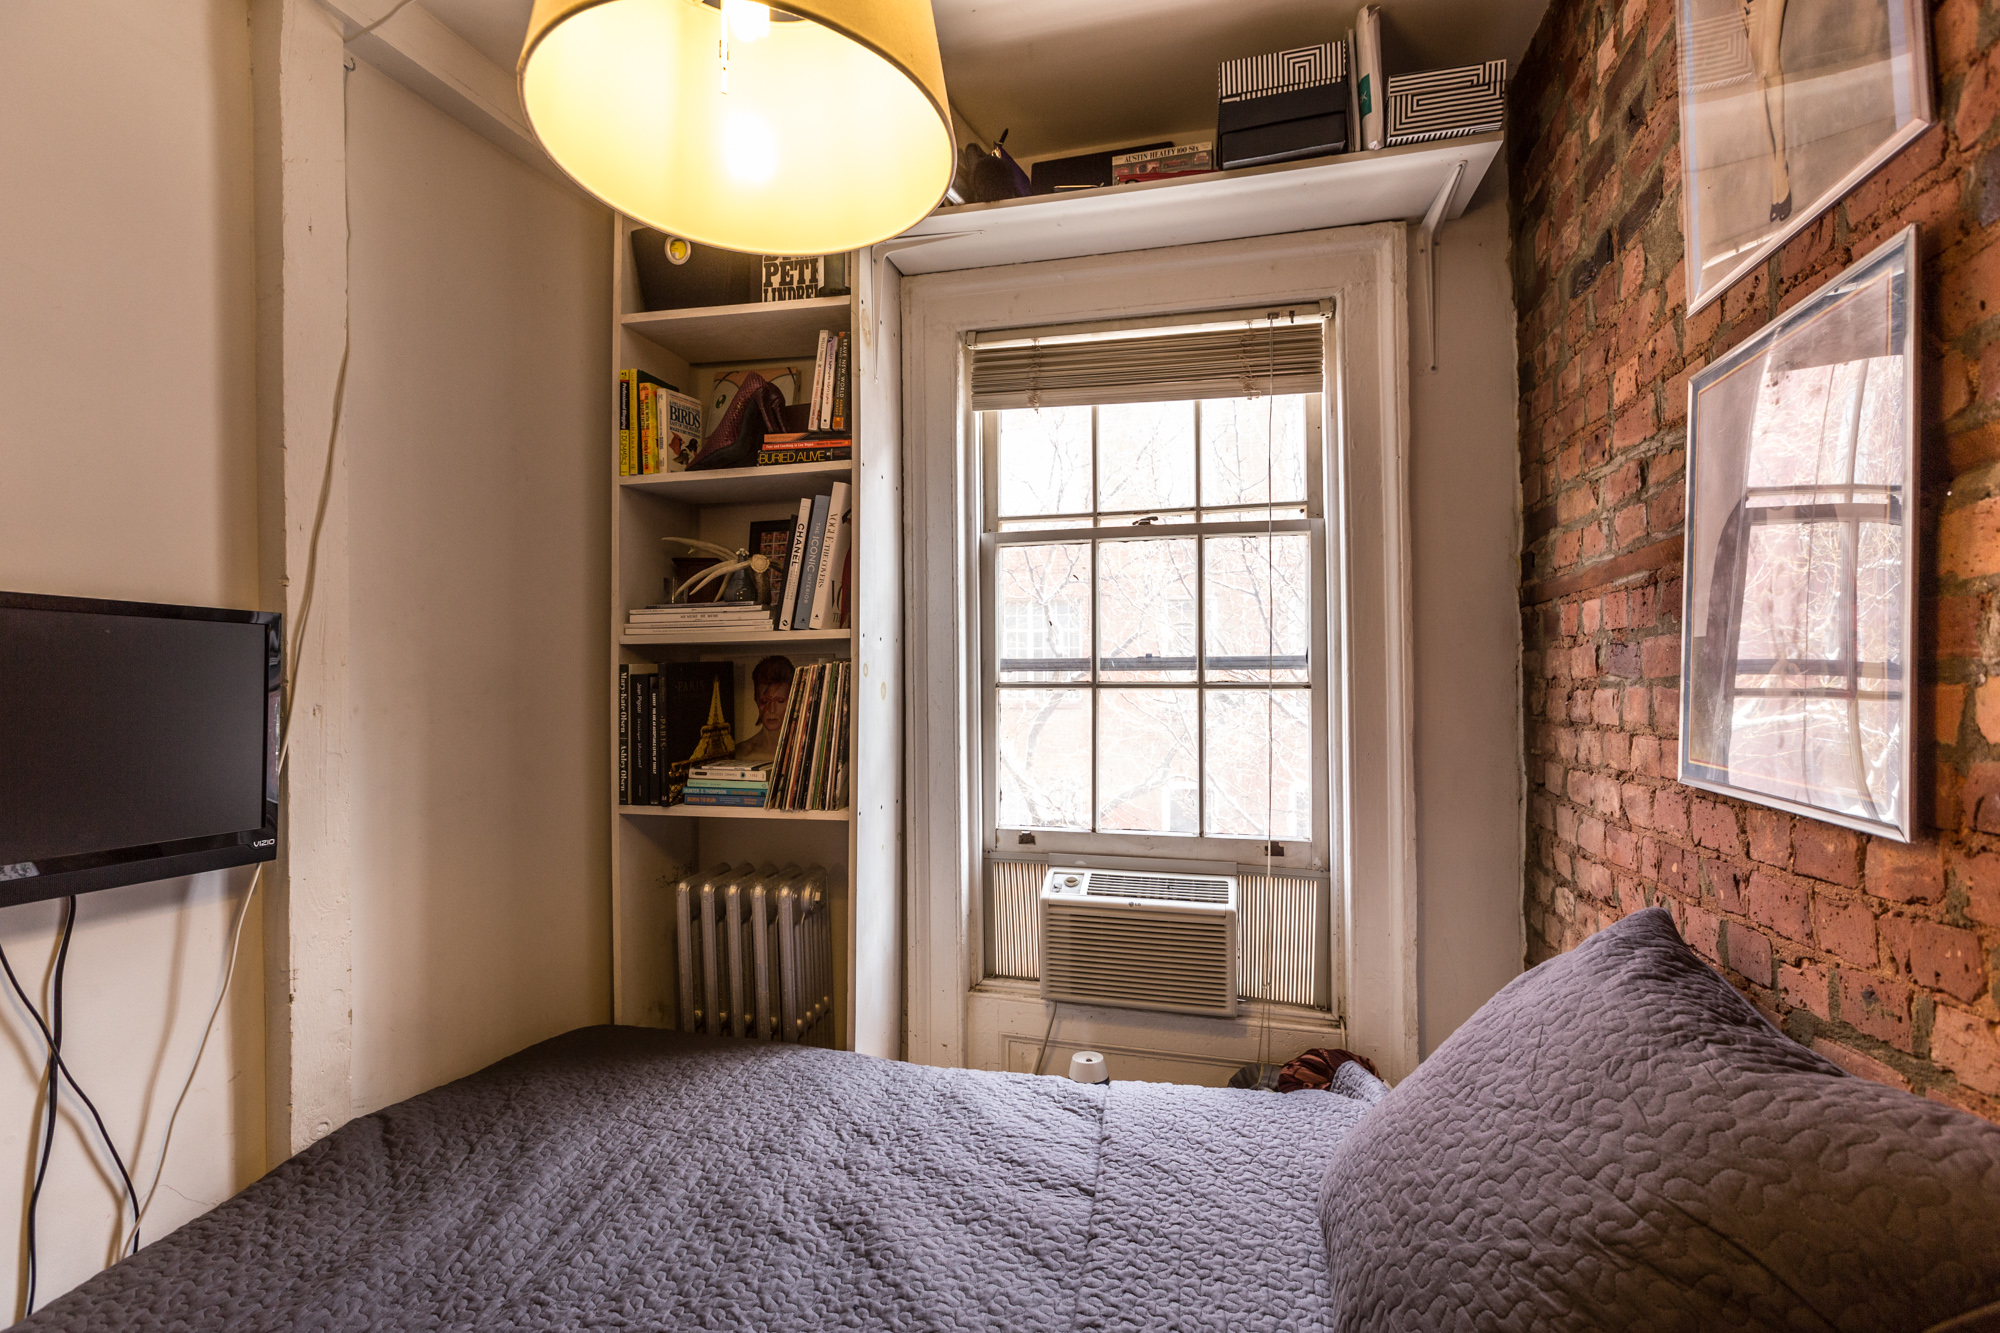 How one new yorker lives comfortably in 90 square feet for 100 sq ft room size